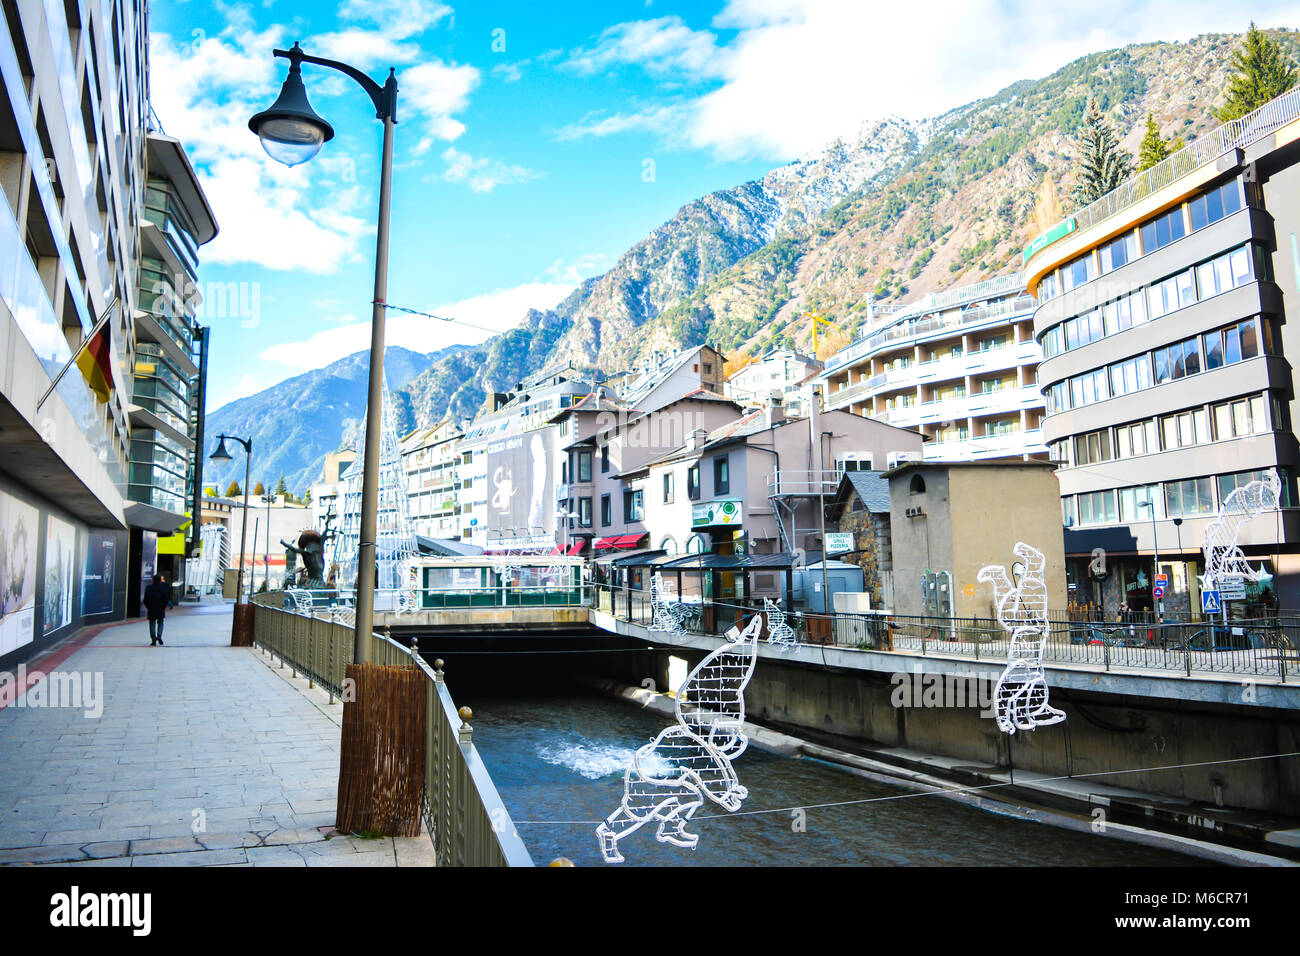 The Gran Valira is the biggest river in Andorra flowing under the Pont de Paris in Andorra la Vella during the winter. Stock Photo